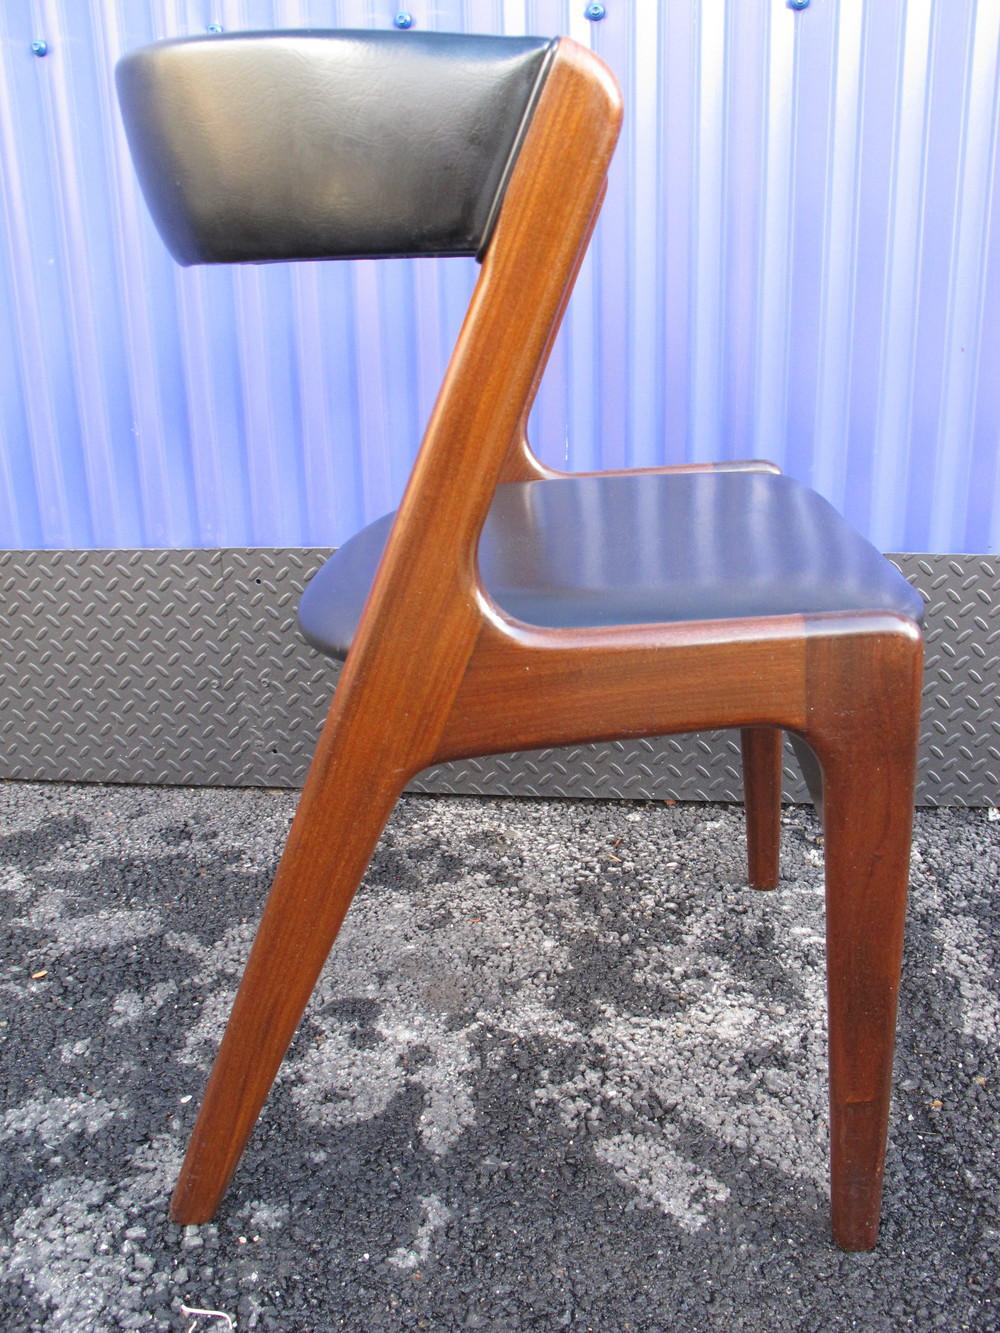 DANISH MODERN SIDE CHAIR BY KAI CHRISTENSEN